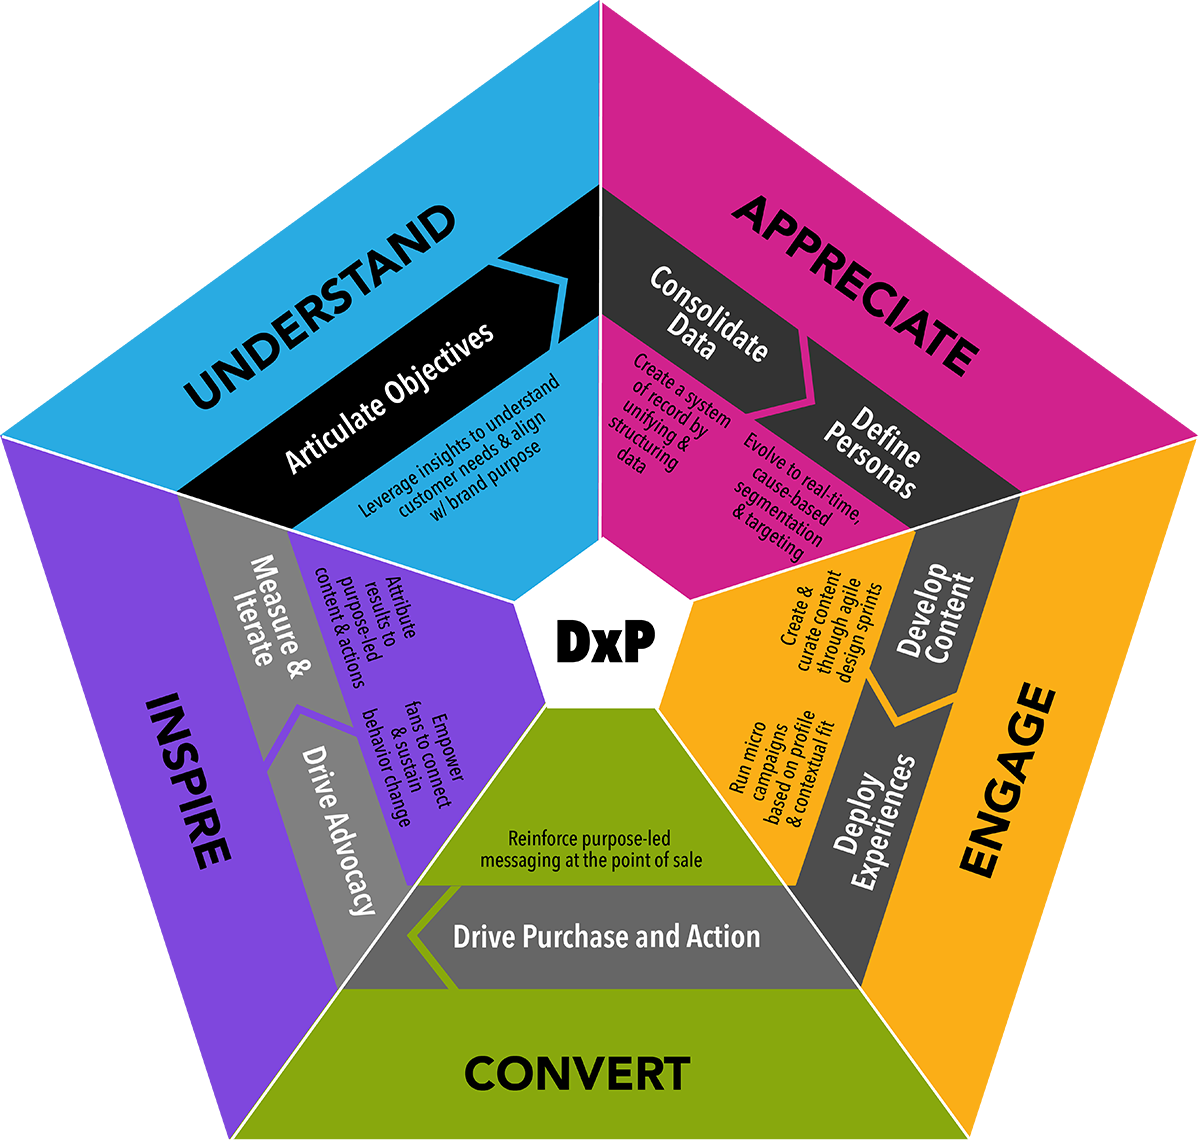 This is about the Dxp Framework, an end-to-end roadmap to create brand purpose and social impact